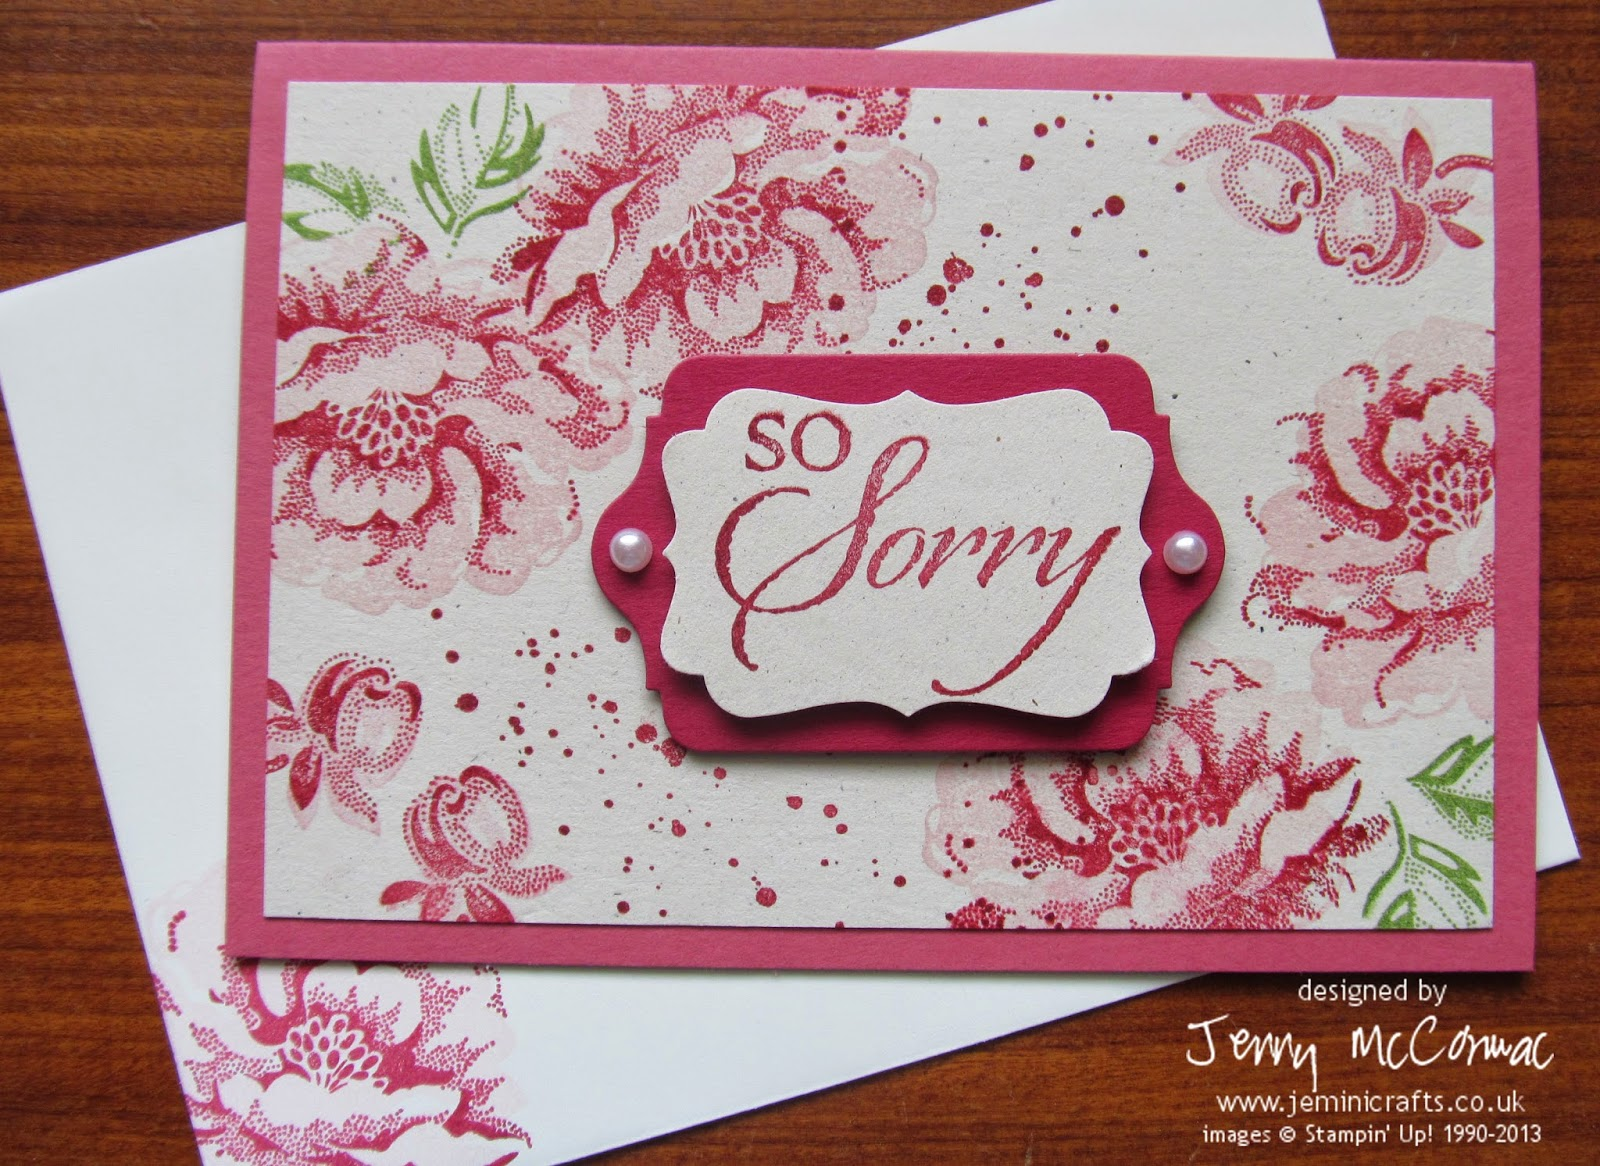 www.jeminicrafts.co.uk Sympathy Cards 2014